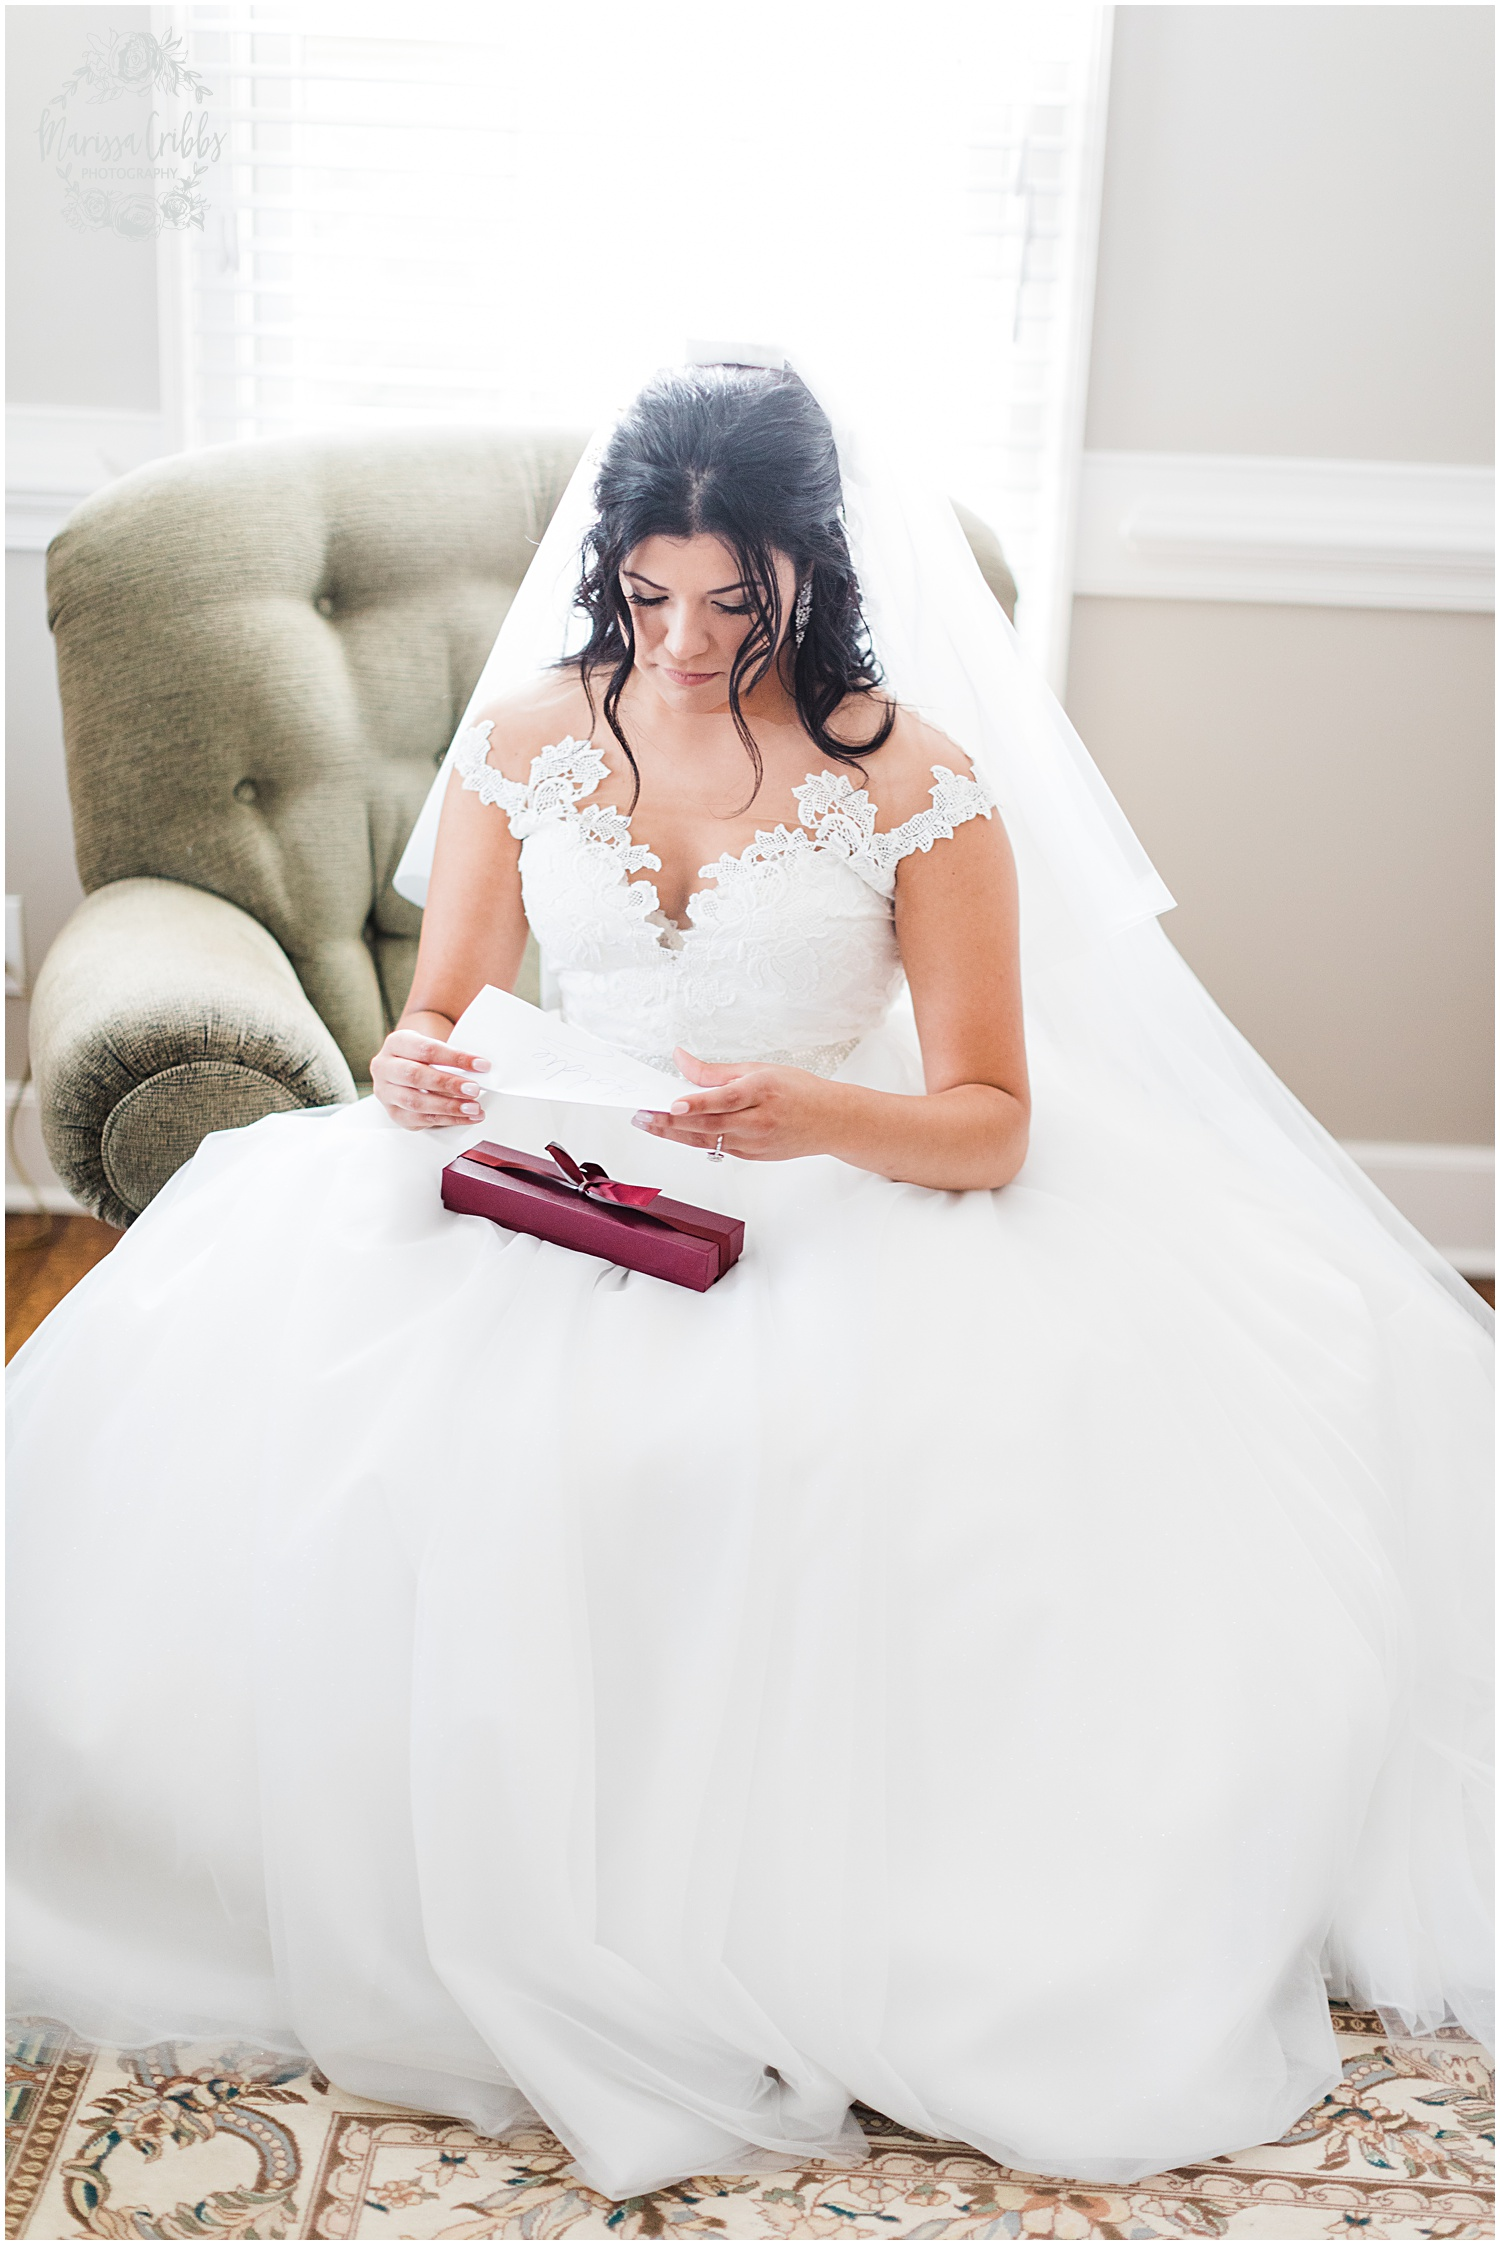 CASEY & GOLDIE MARRIED BLOG | MARISSA CRIBBS PHOTOGRAPHY_7976.jpg